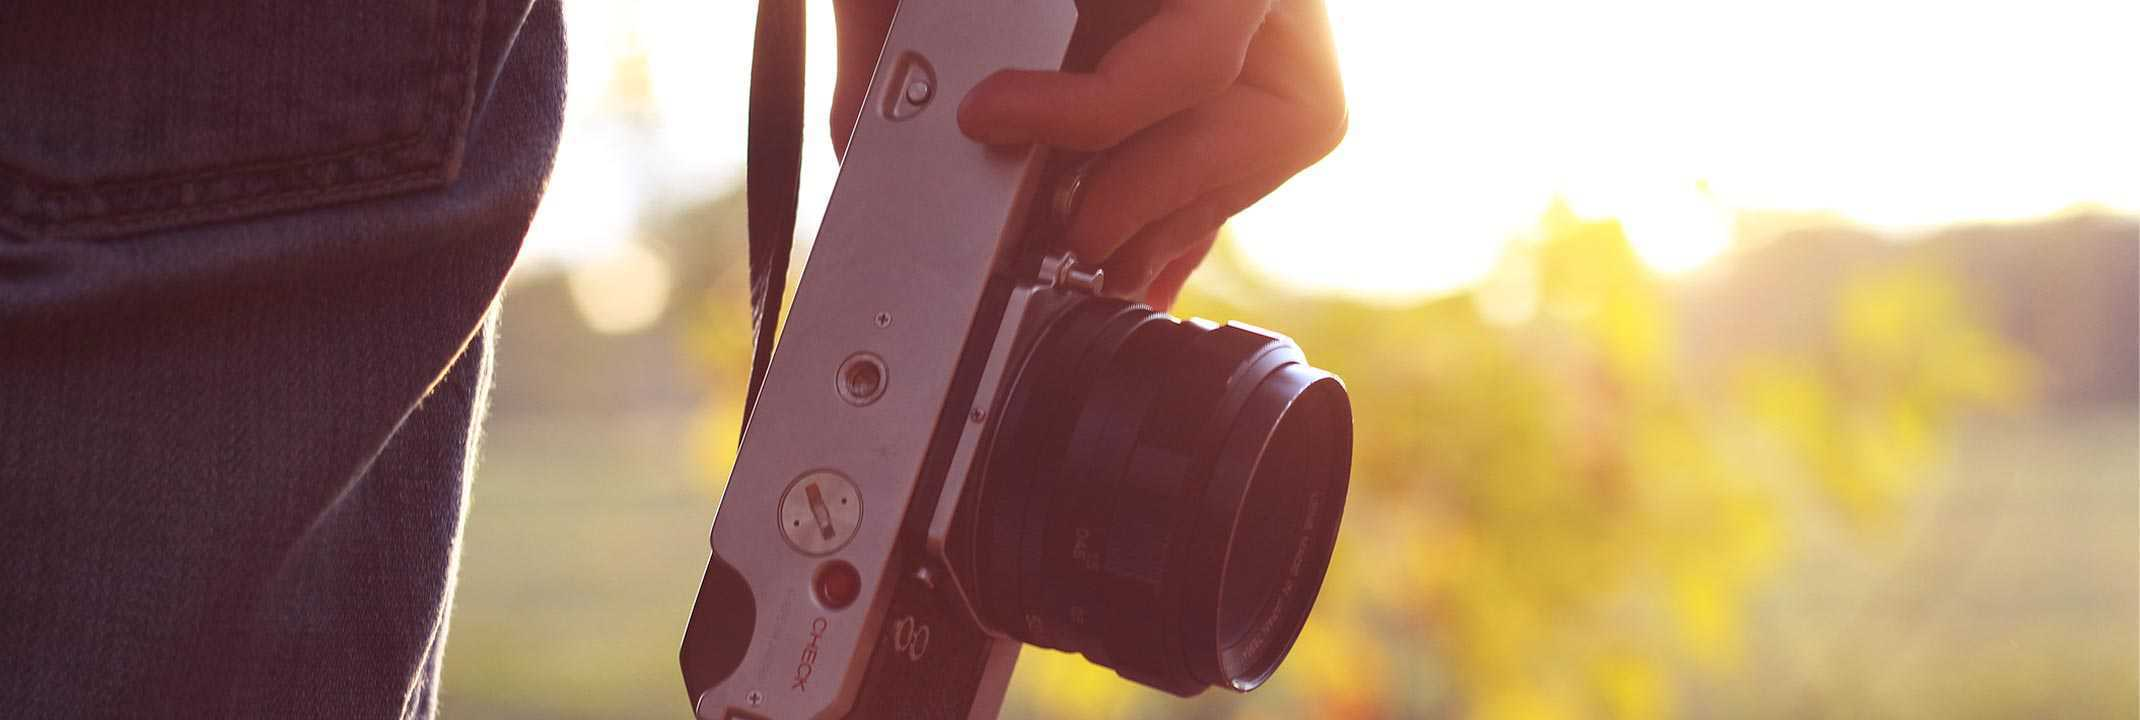 Mirrorless Camera for Travel